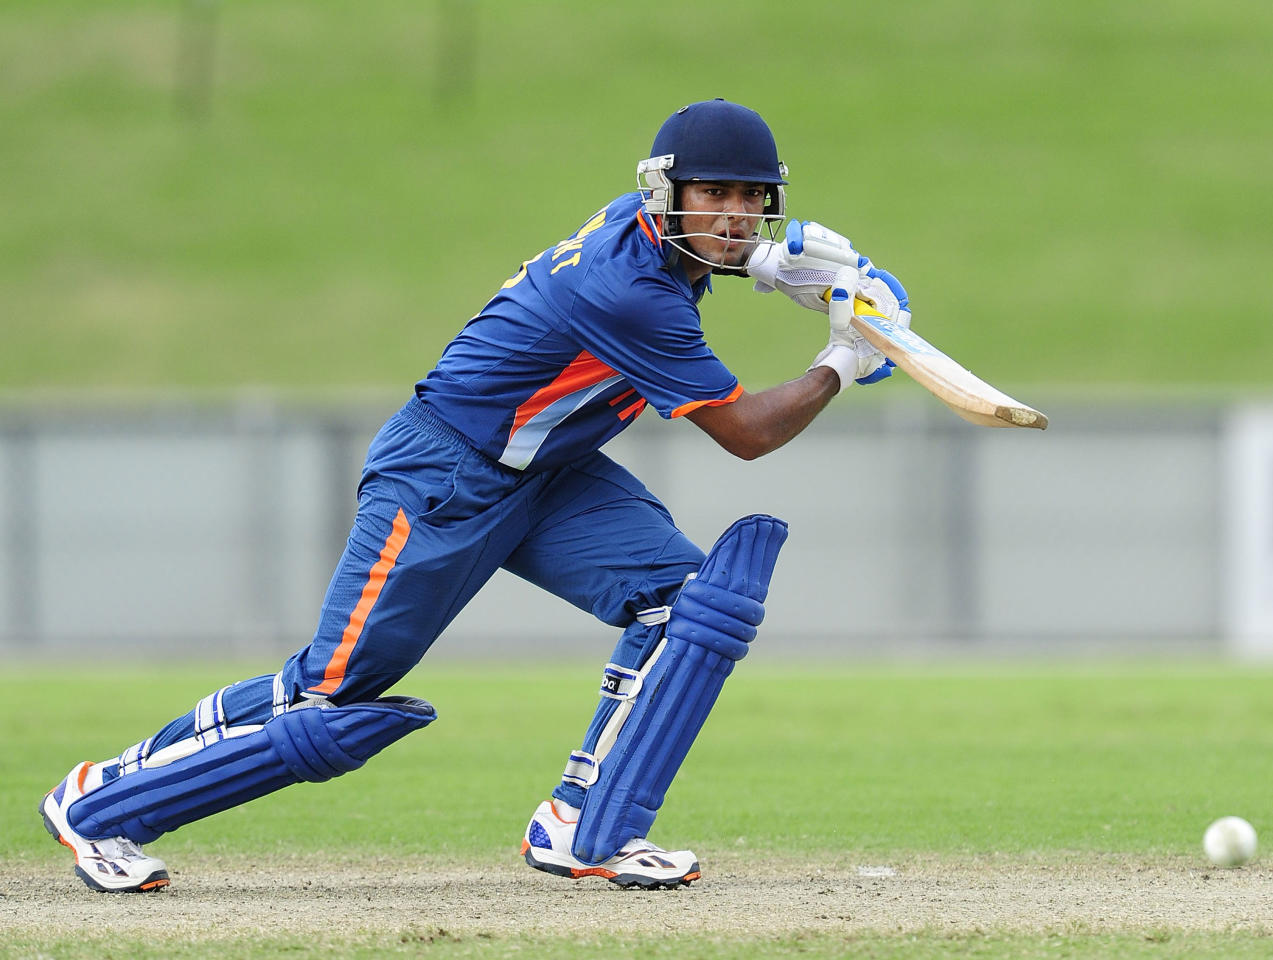 TOWNSVILLE, AUSTRALIA - APRIL 15:  Unmukt Chand of India bats during the match between Australia and India on day five of the U19 International Quad Series at Tony Ireland Stadium on April 15, 2012 in Townsville, Australia.  (Photo by Ian Hitchcock/Getty Images)